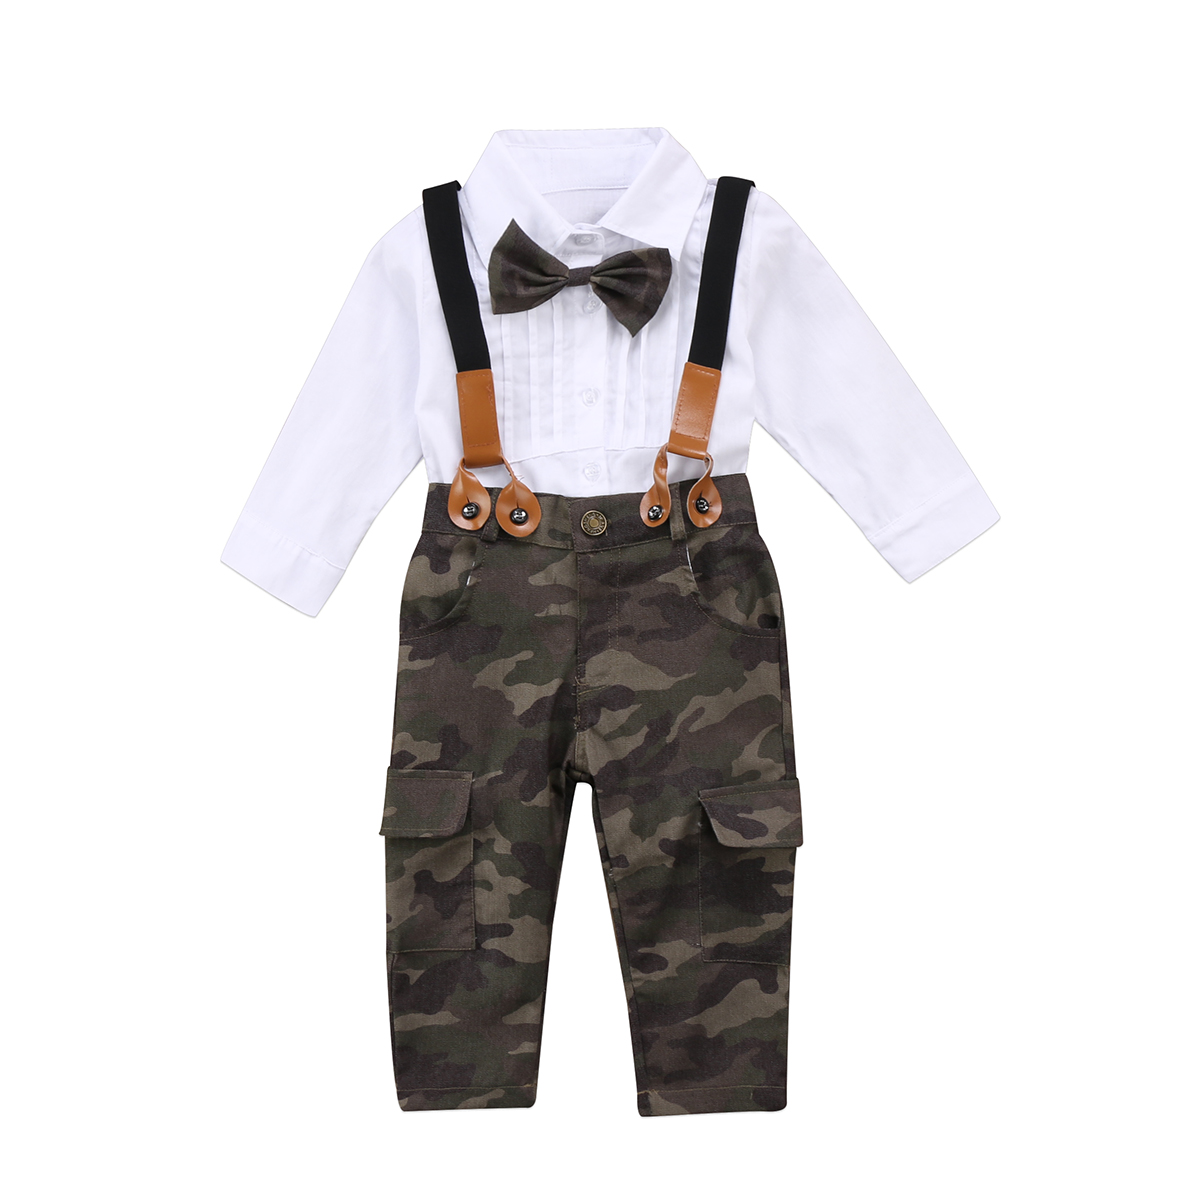 Cute Kids Baby Girl Clothes Outfit White Bow Tie shirts Tops Camouflage Pants Overalls 2pcs Set Autumn Girls Clothing 1-6Years